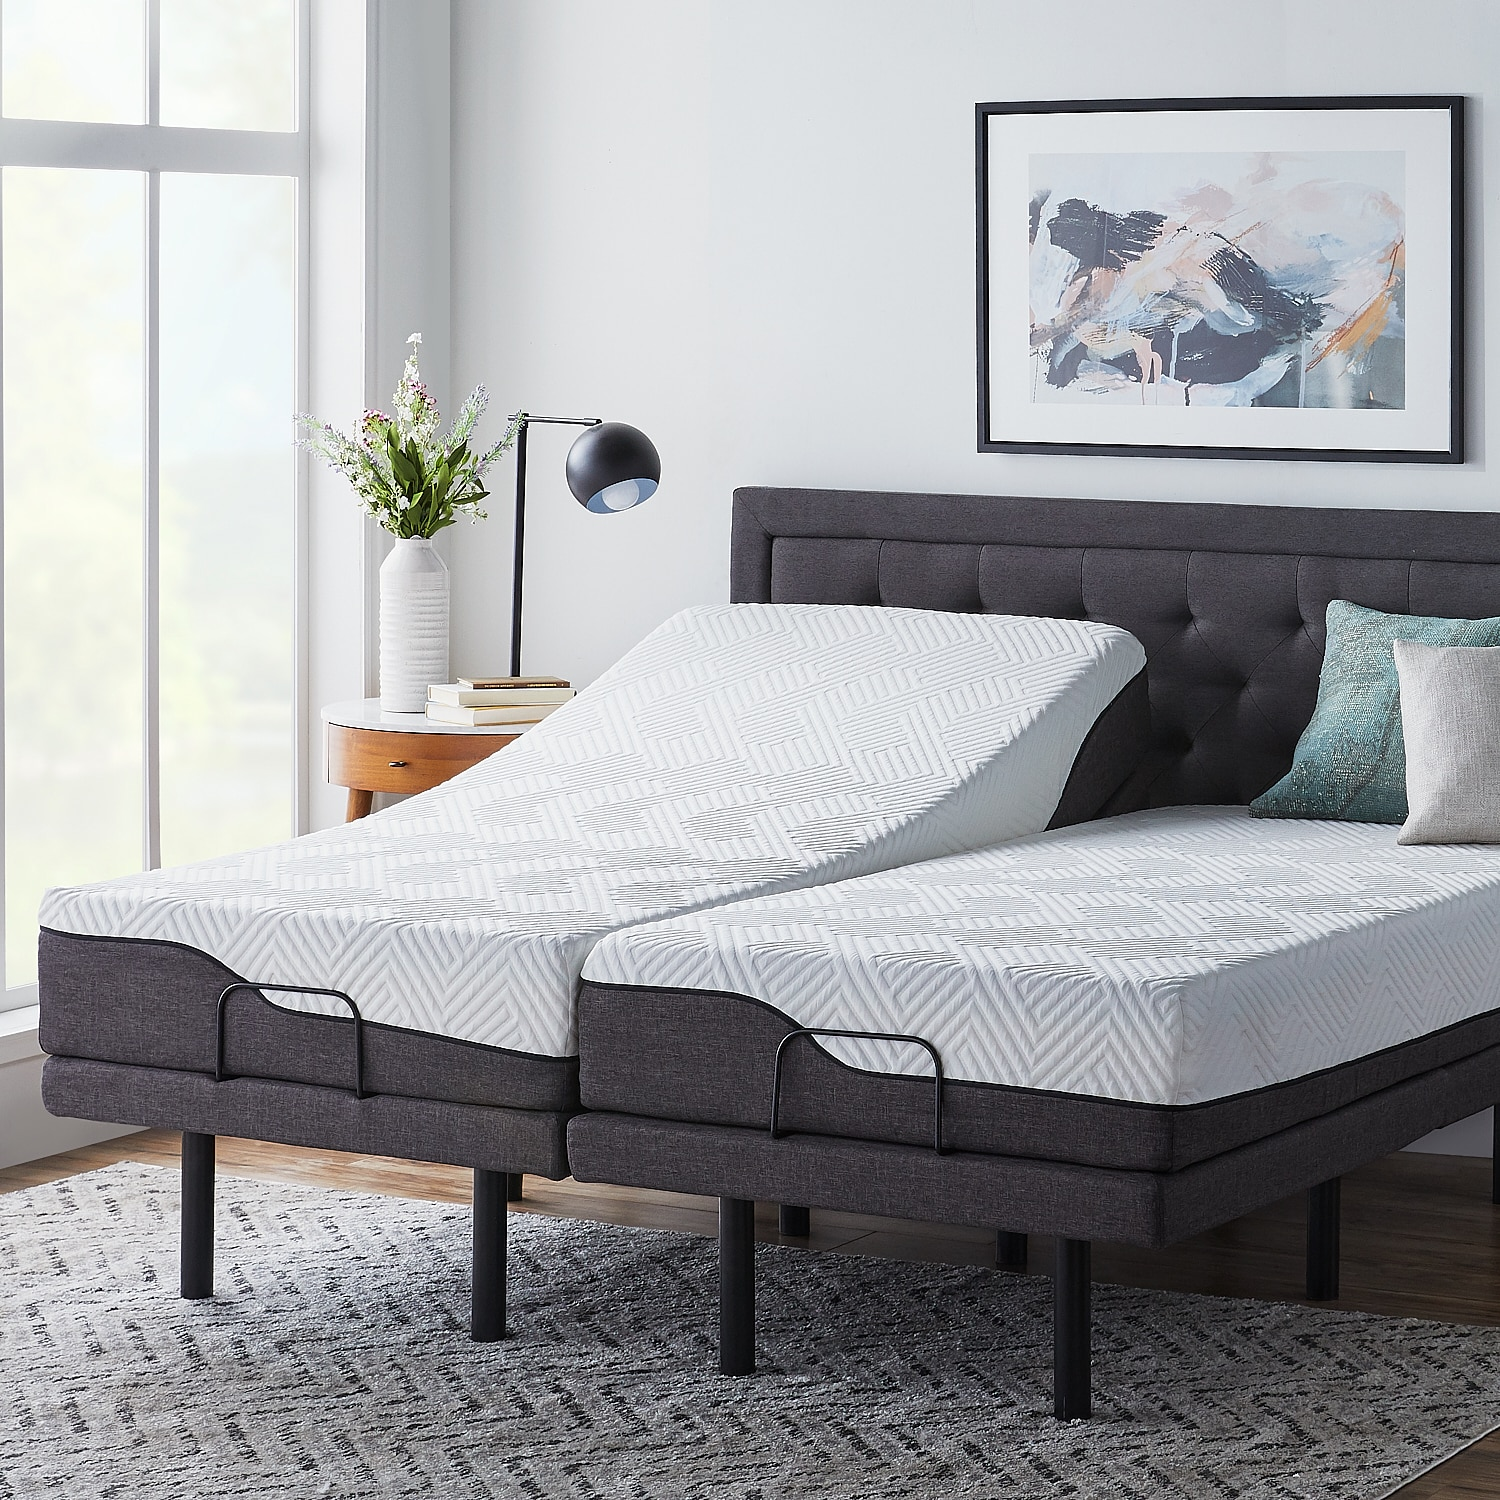 Shop lucid comfort collection 12 inch split king size memory foam hybrid mattress with l300 adjustable base free shipping today overstock com 21585549